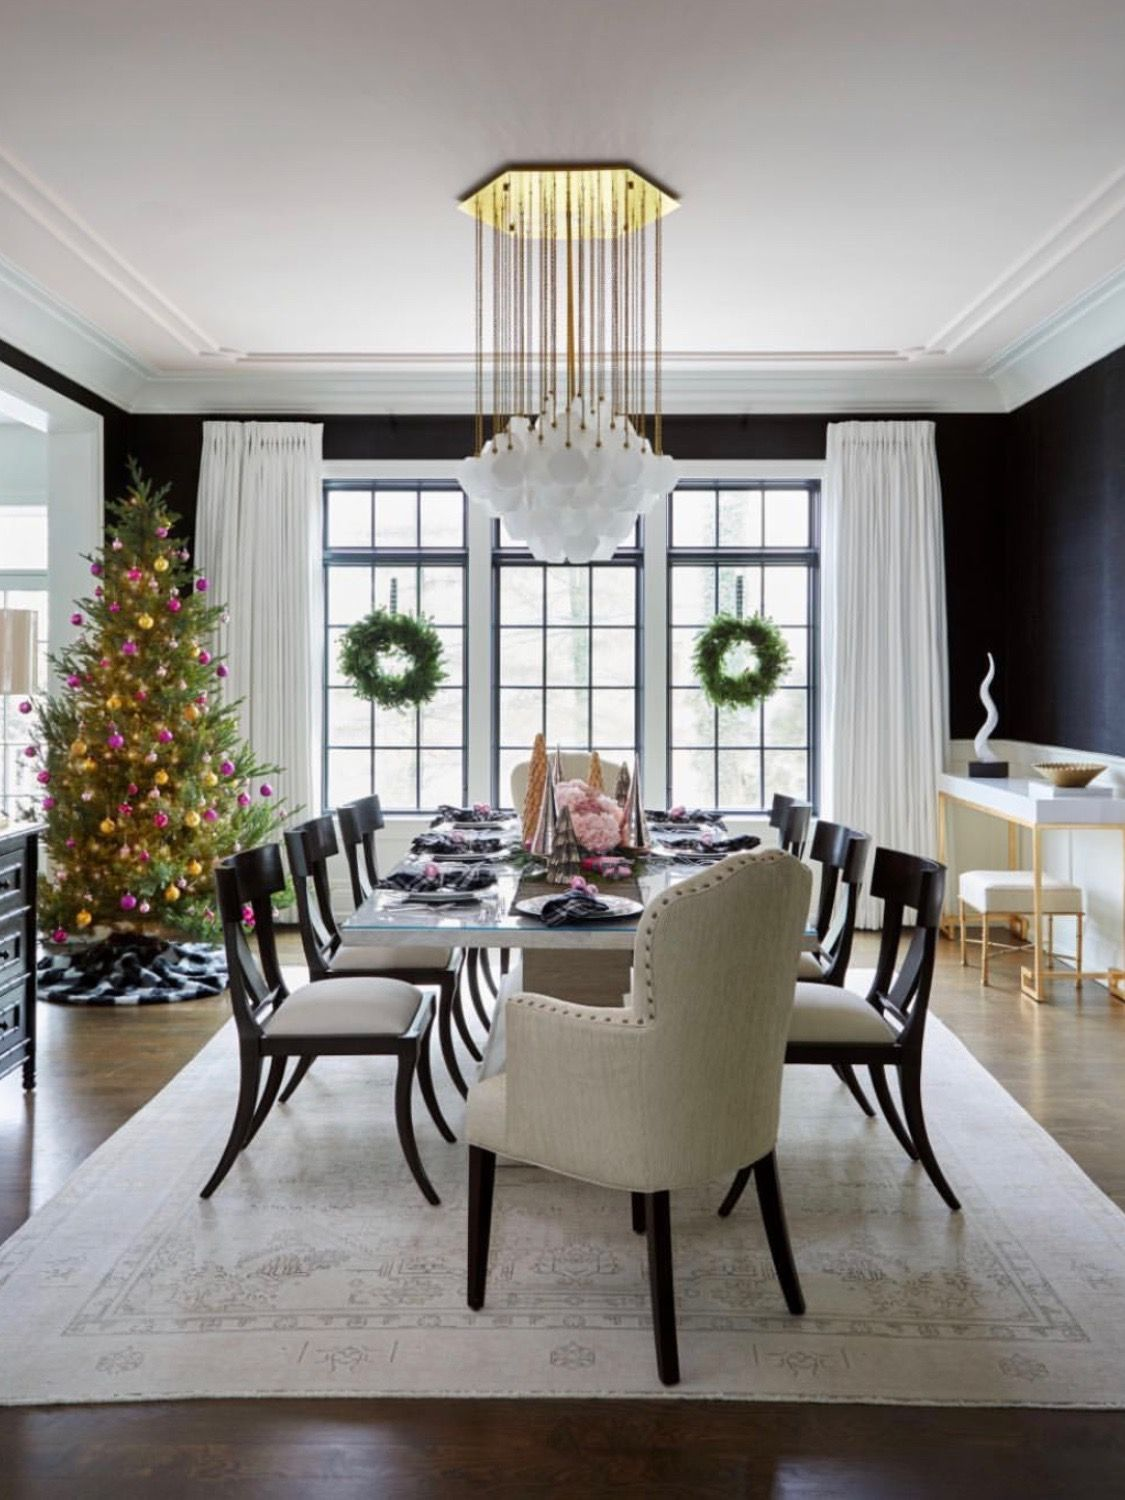 Pin by MaryO on Interior Design(33 categories) | Unique home decor, Home,  Traditional dining rooms